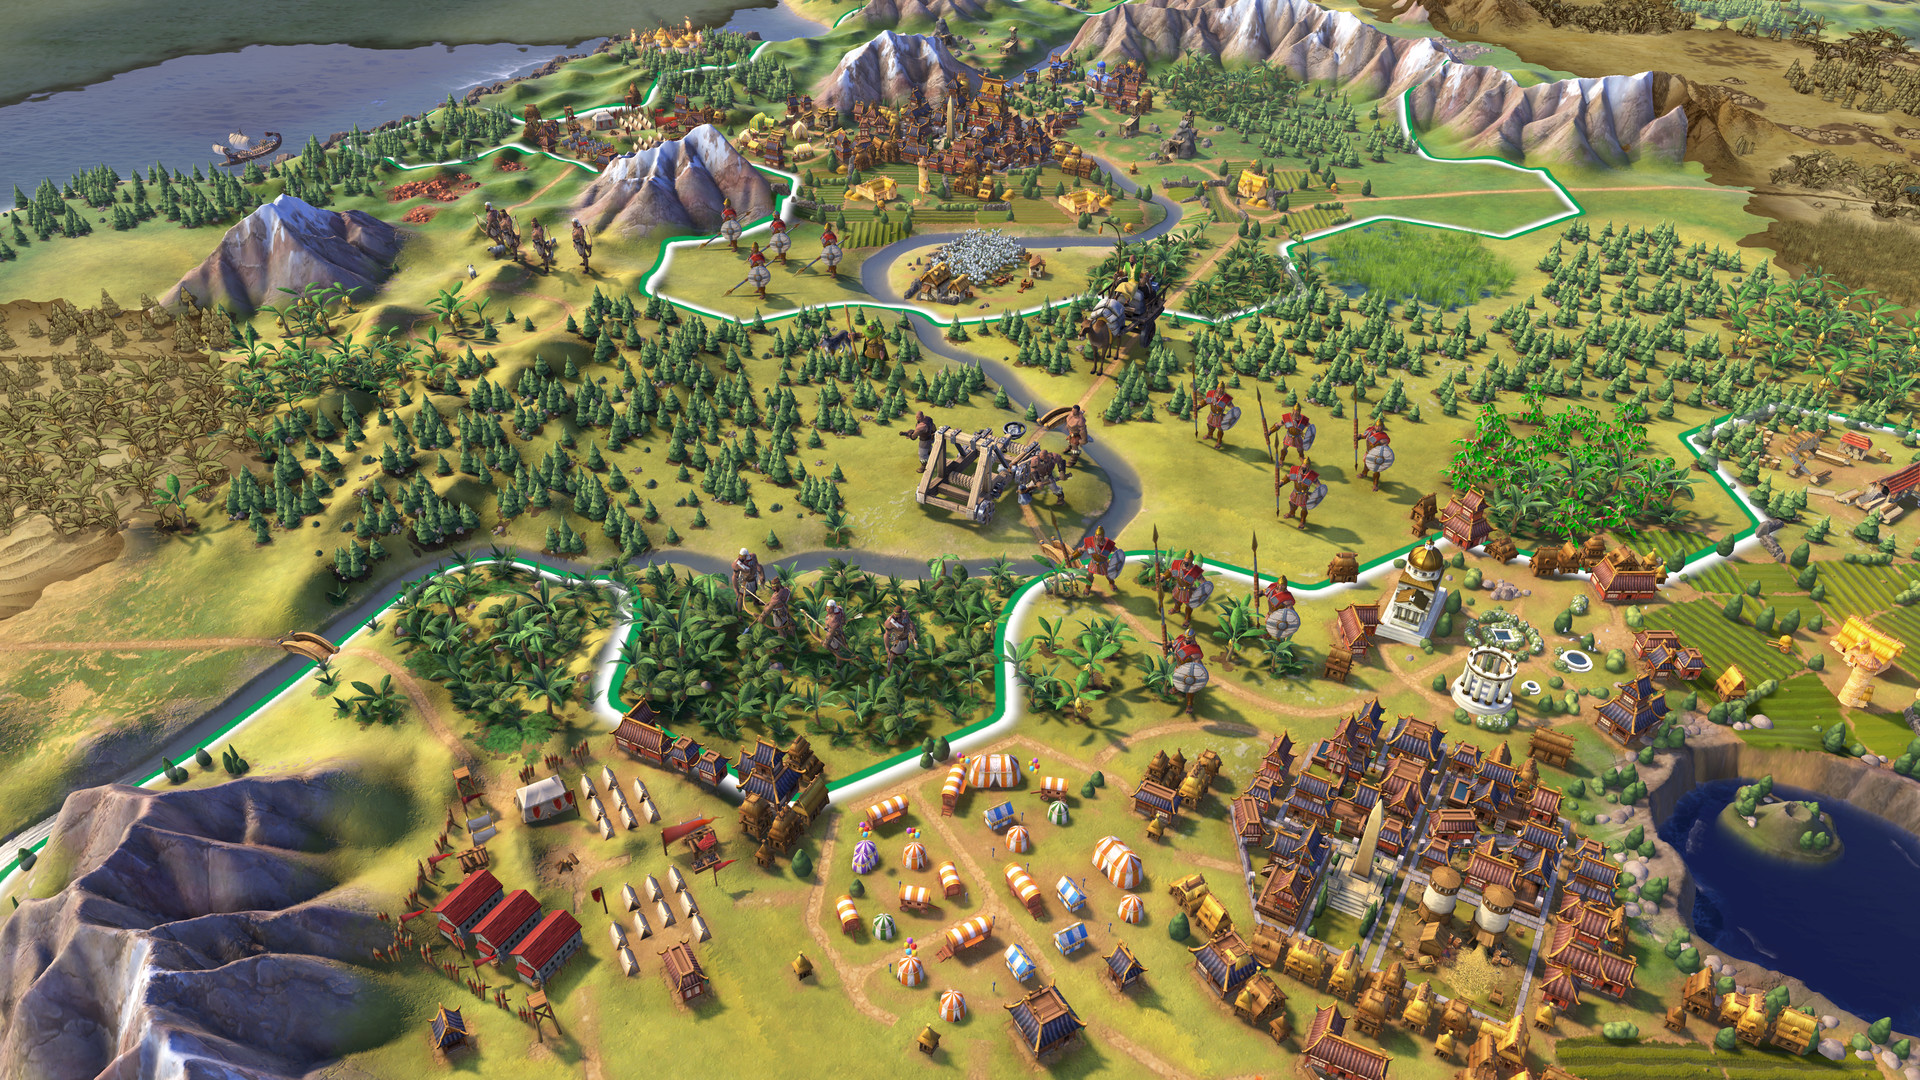 System Requirements for Civilization VI Revealed